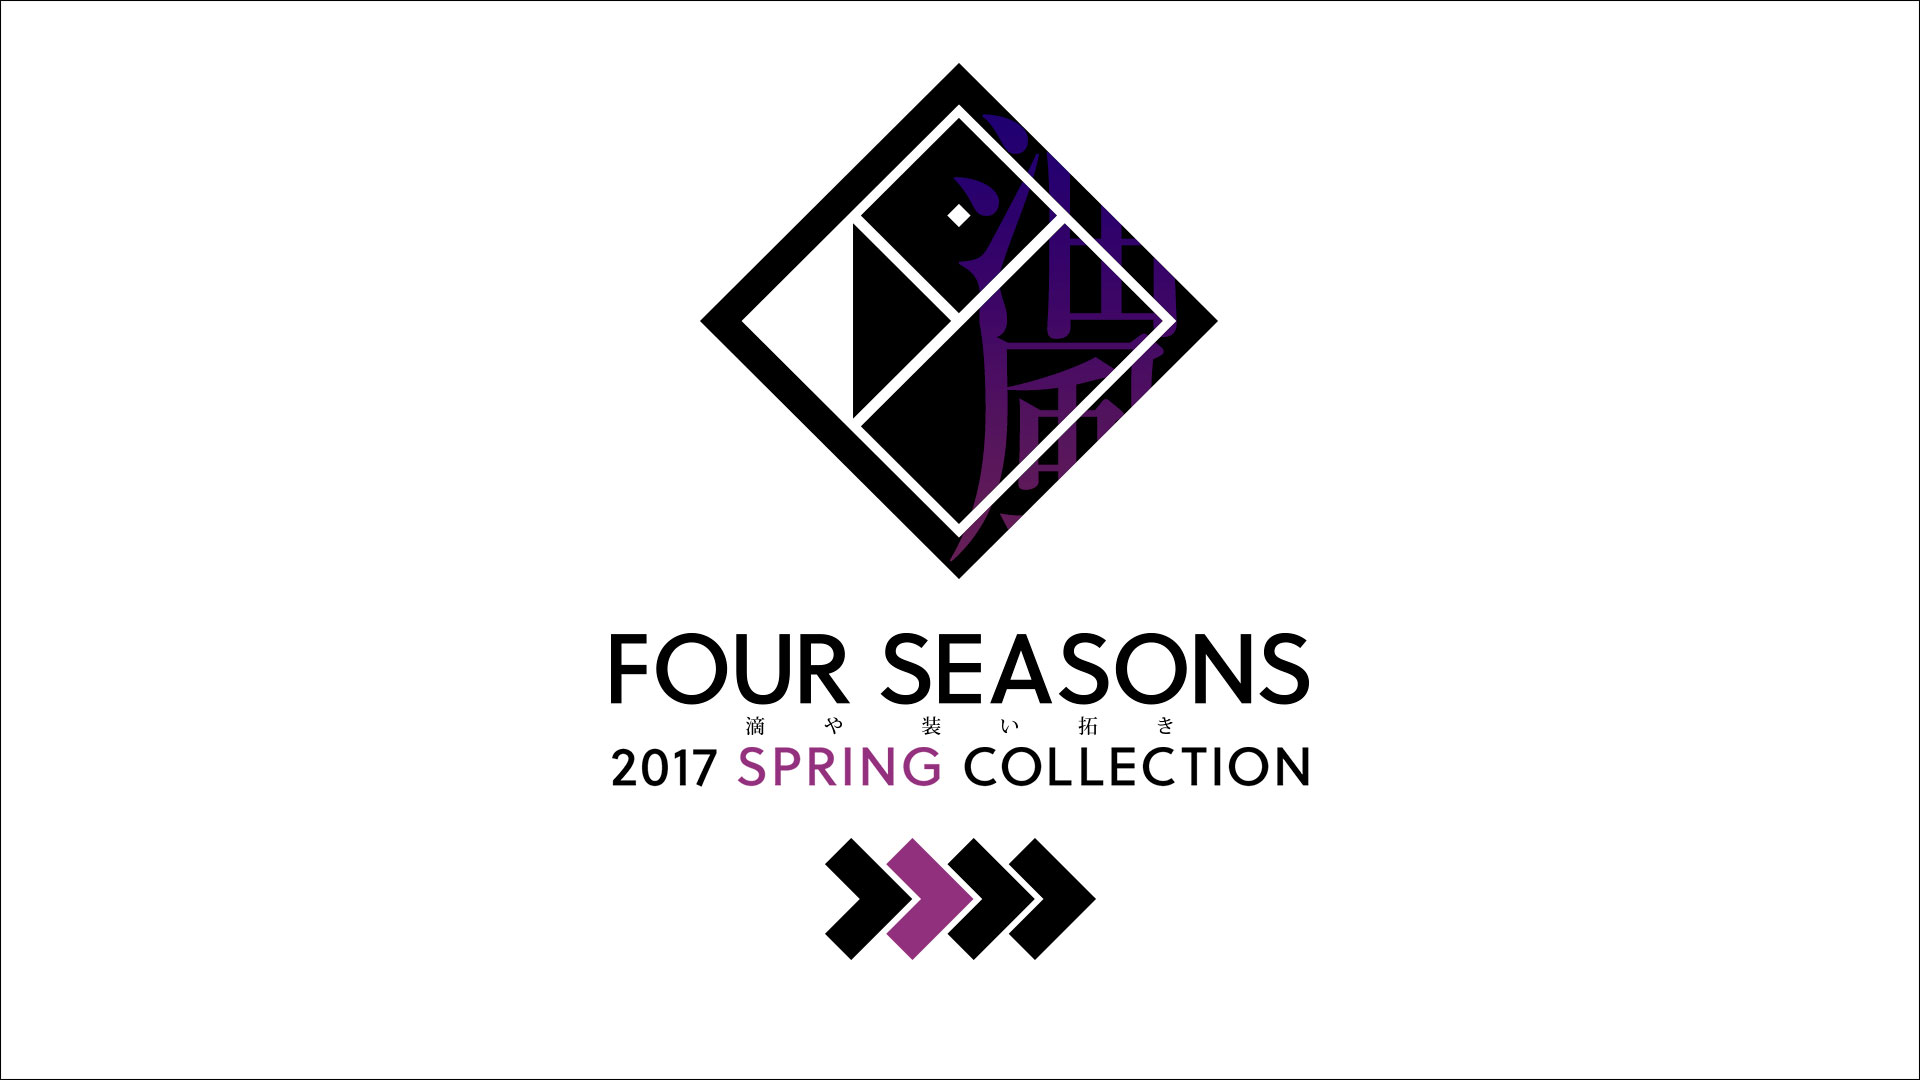 [PHOTO:FOUR SEASONS 2017 SPRING COLLECTION]